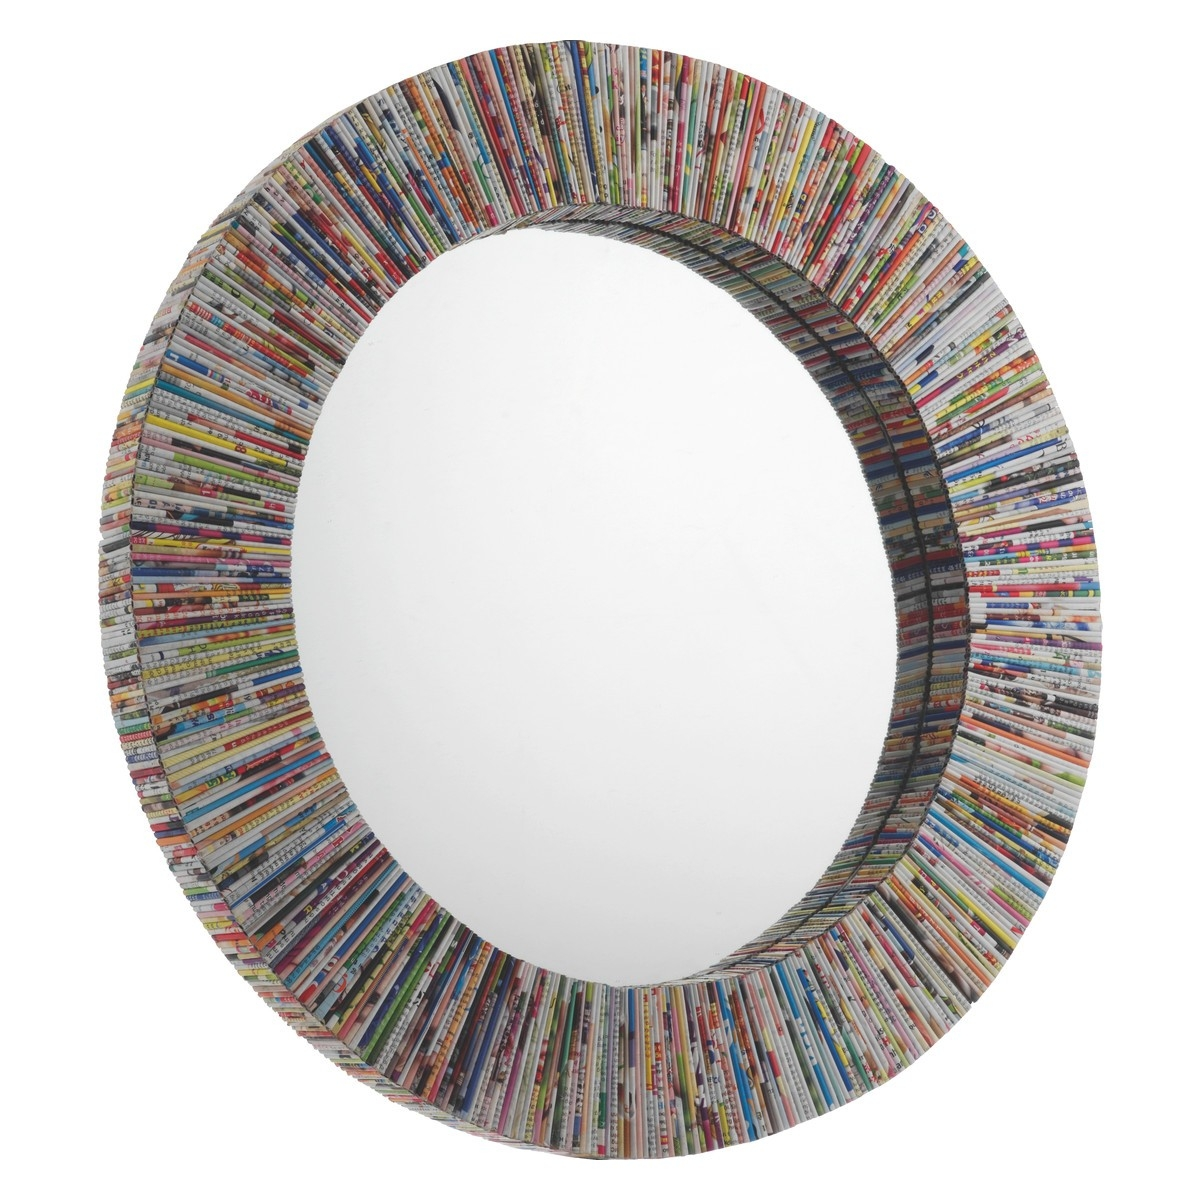 Mirrors Full Length Large Round Wall Mirrors Habitat In Mirrors Round Large (Image 14 of 15)